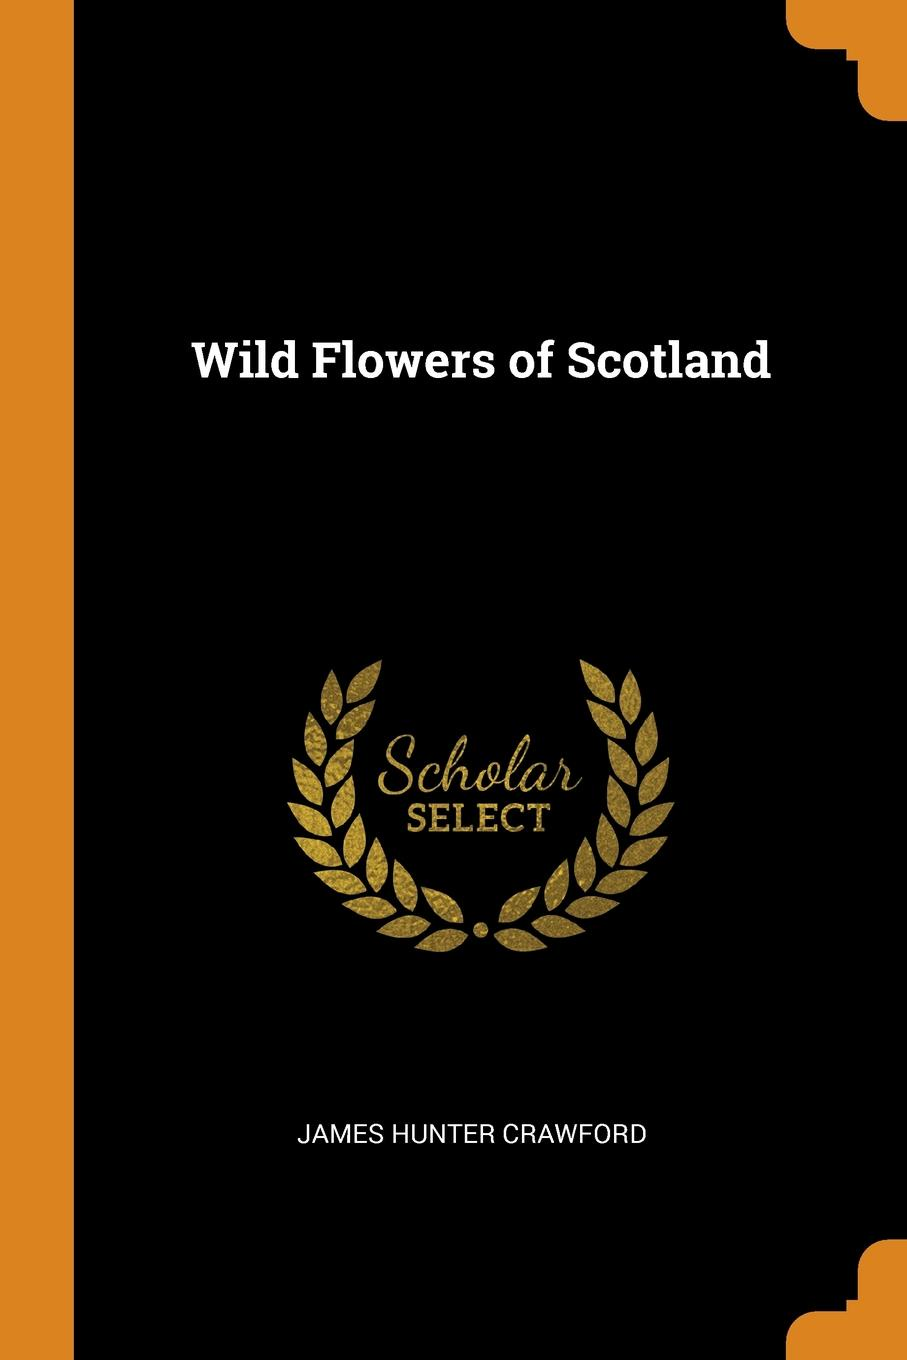 James Hunter Crawford. Wild Flowers of Scotland